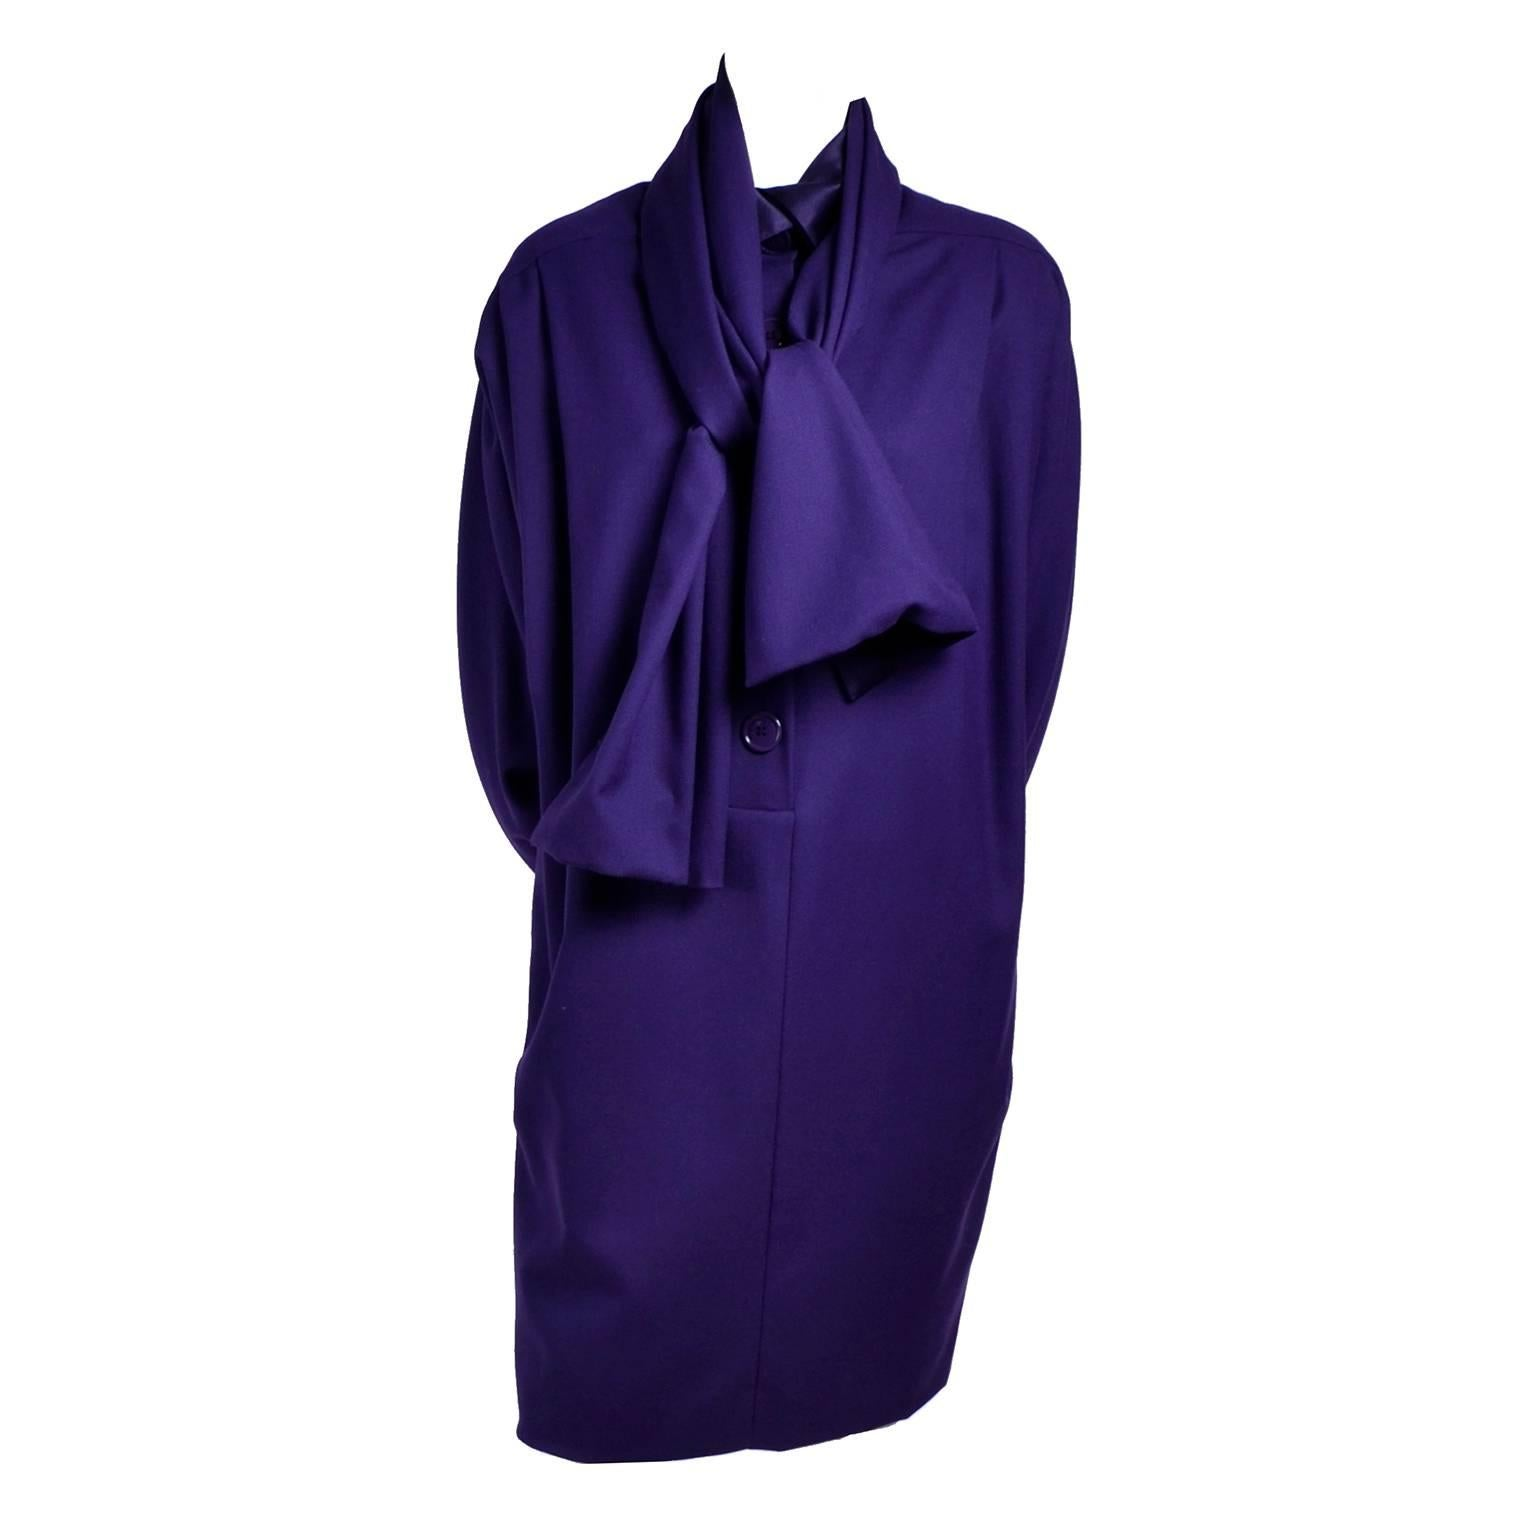 Ferre Italy Purple Wool 1990s Vintage Dress with Scarf M/L